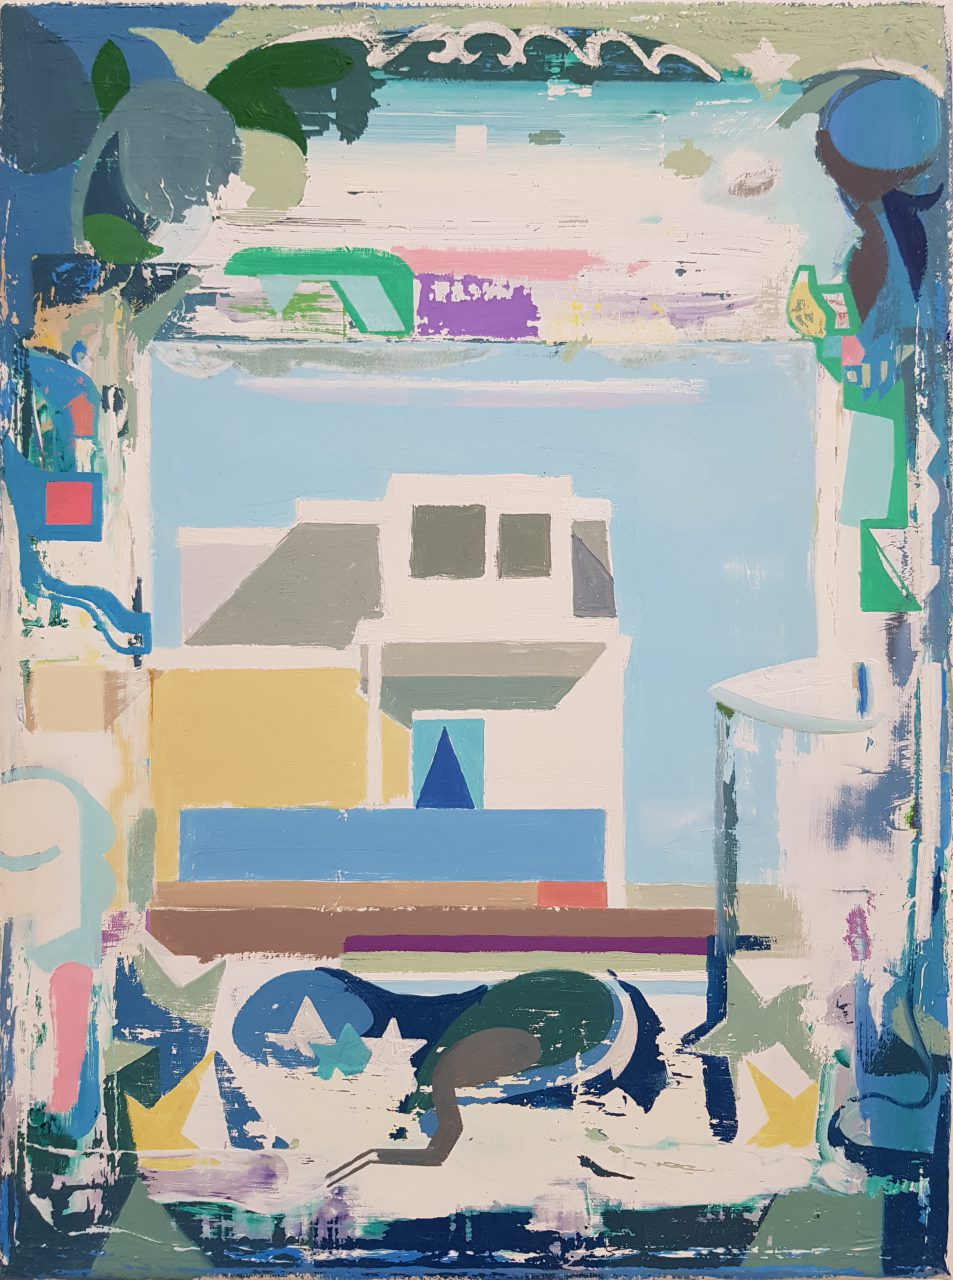 Dutch House house framed with graffiti, 2015/2018. Oil on canvas, 40x30cm